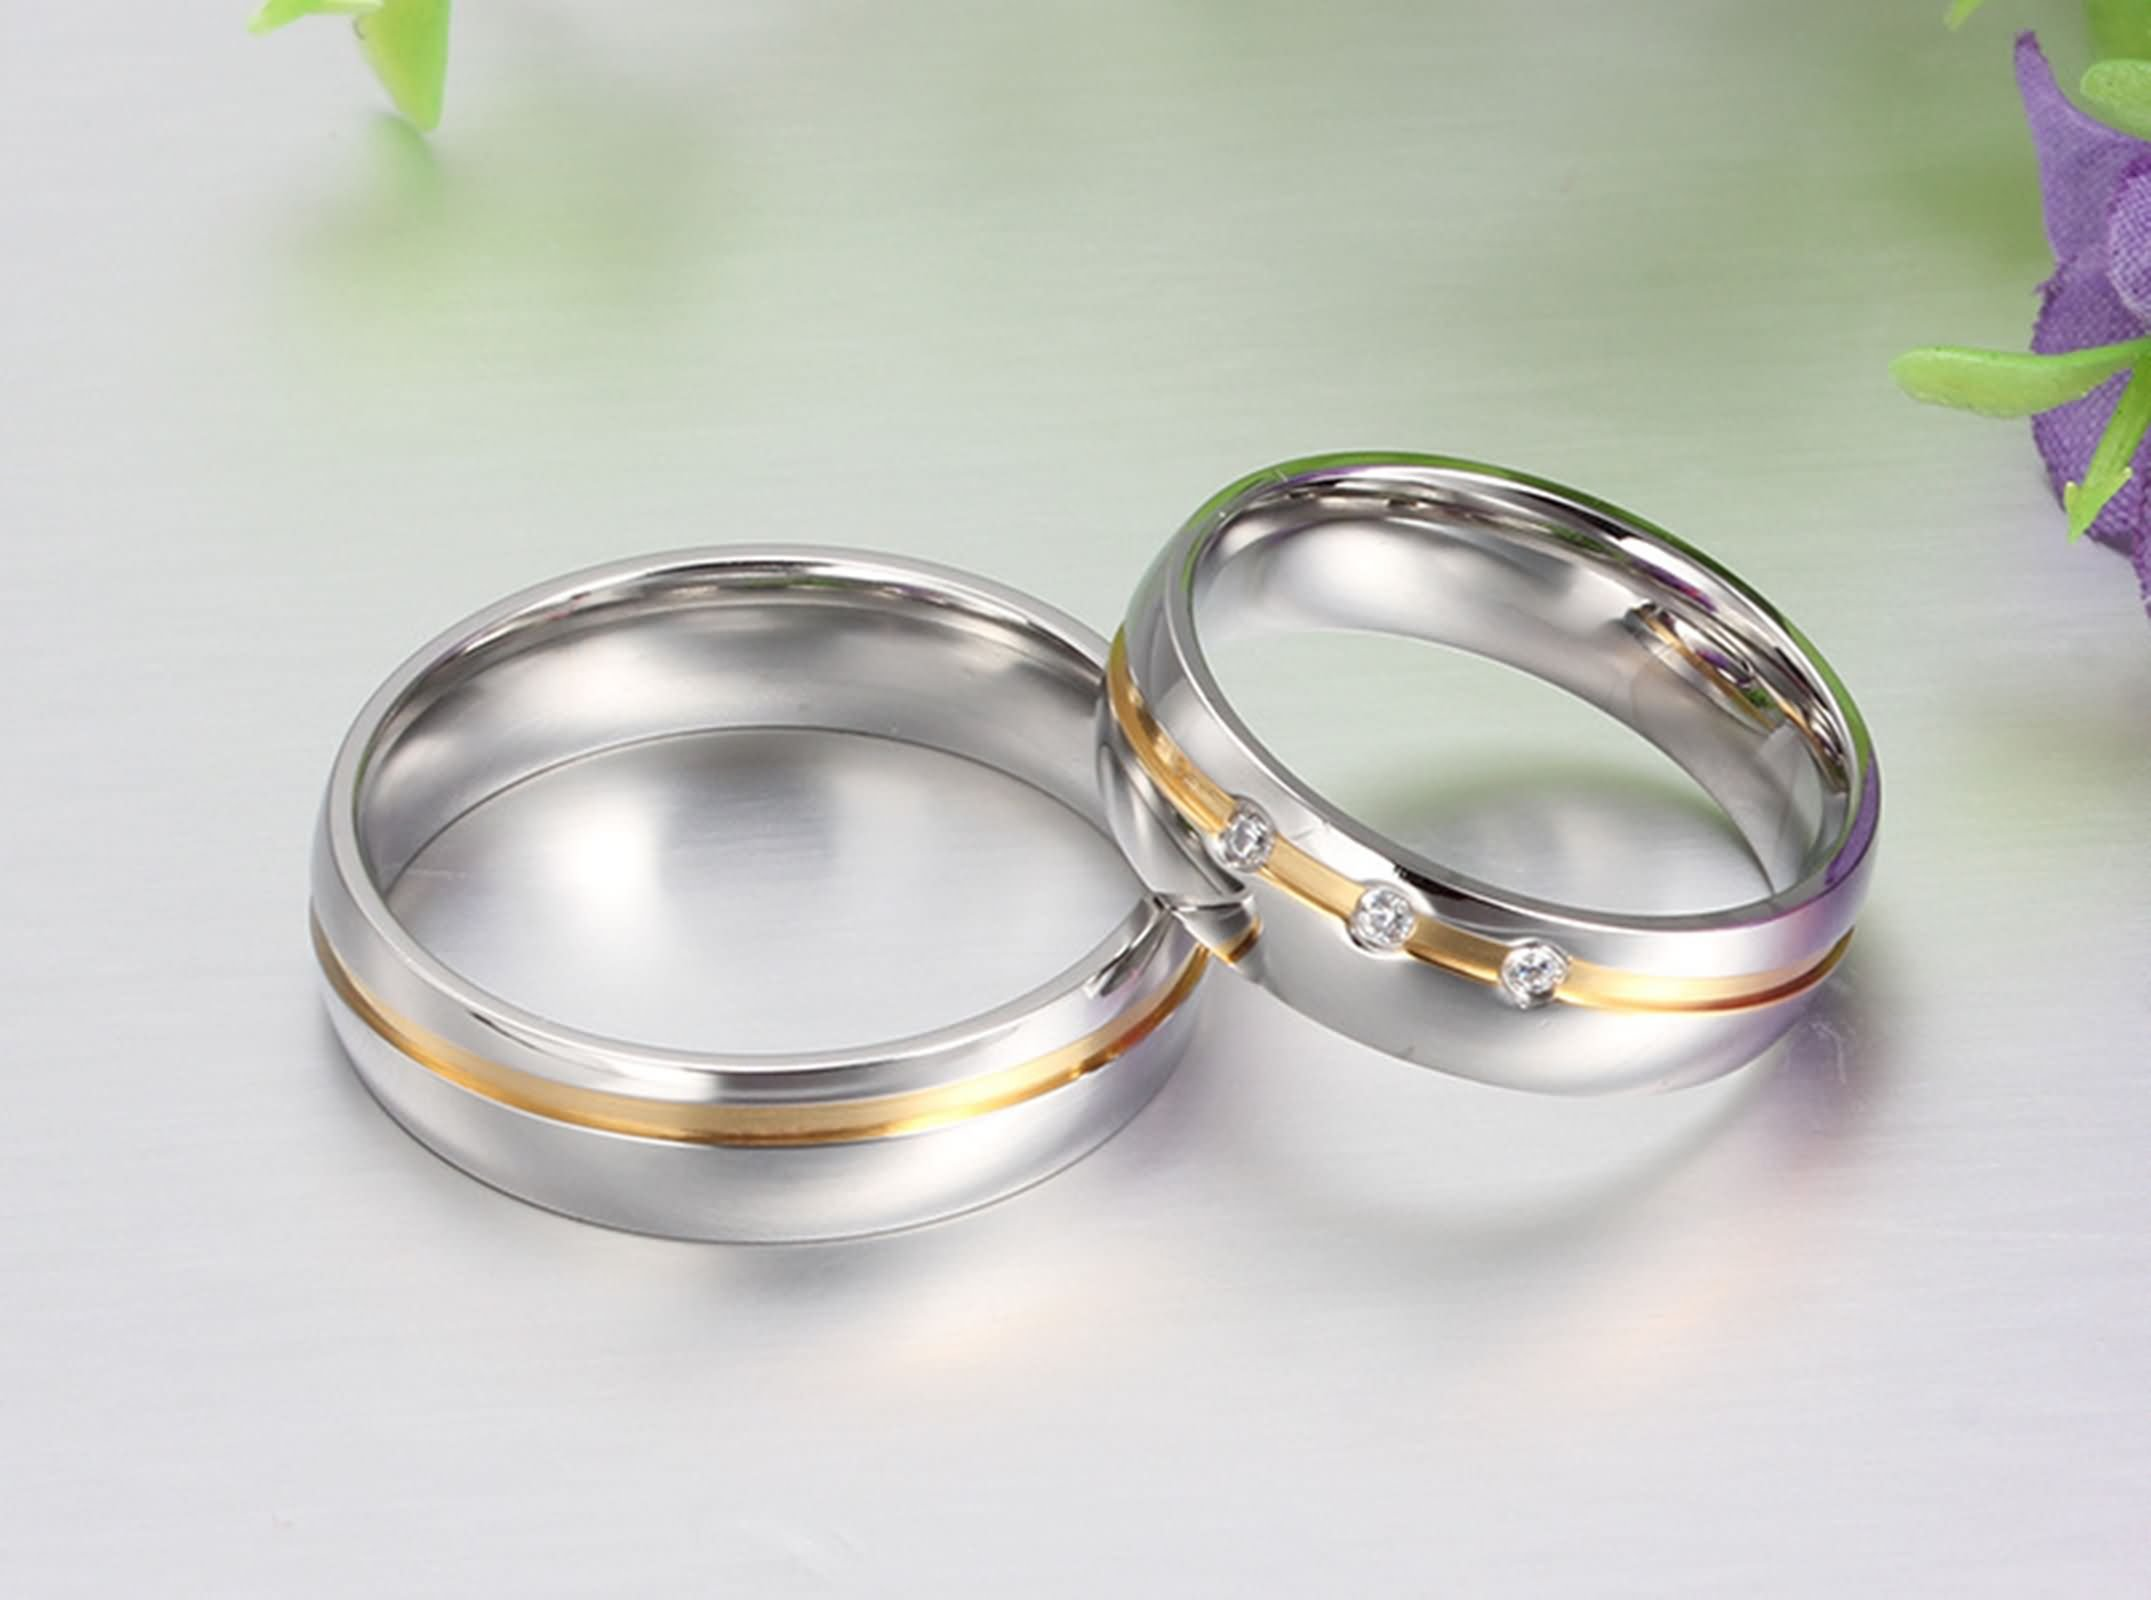 Beydodo Titanium Rings Set for Women Stainless Steel Ring Bands Round CZ Women Size 7 & Men Size 12 by Beydodo (Image #4)